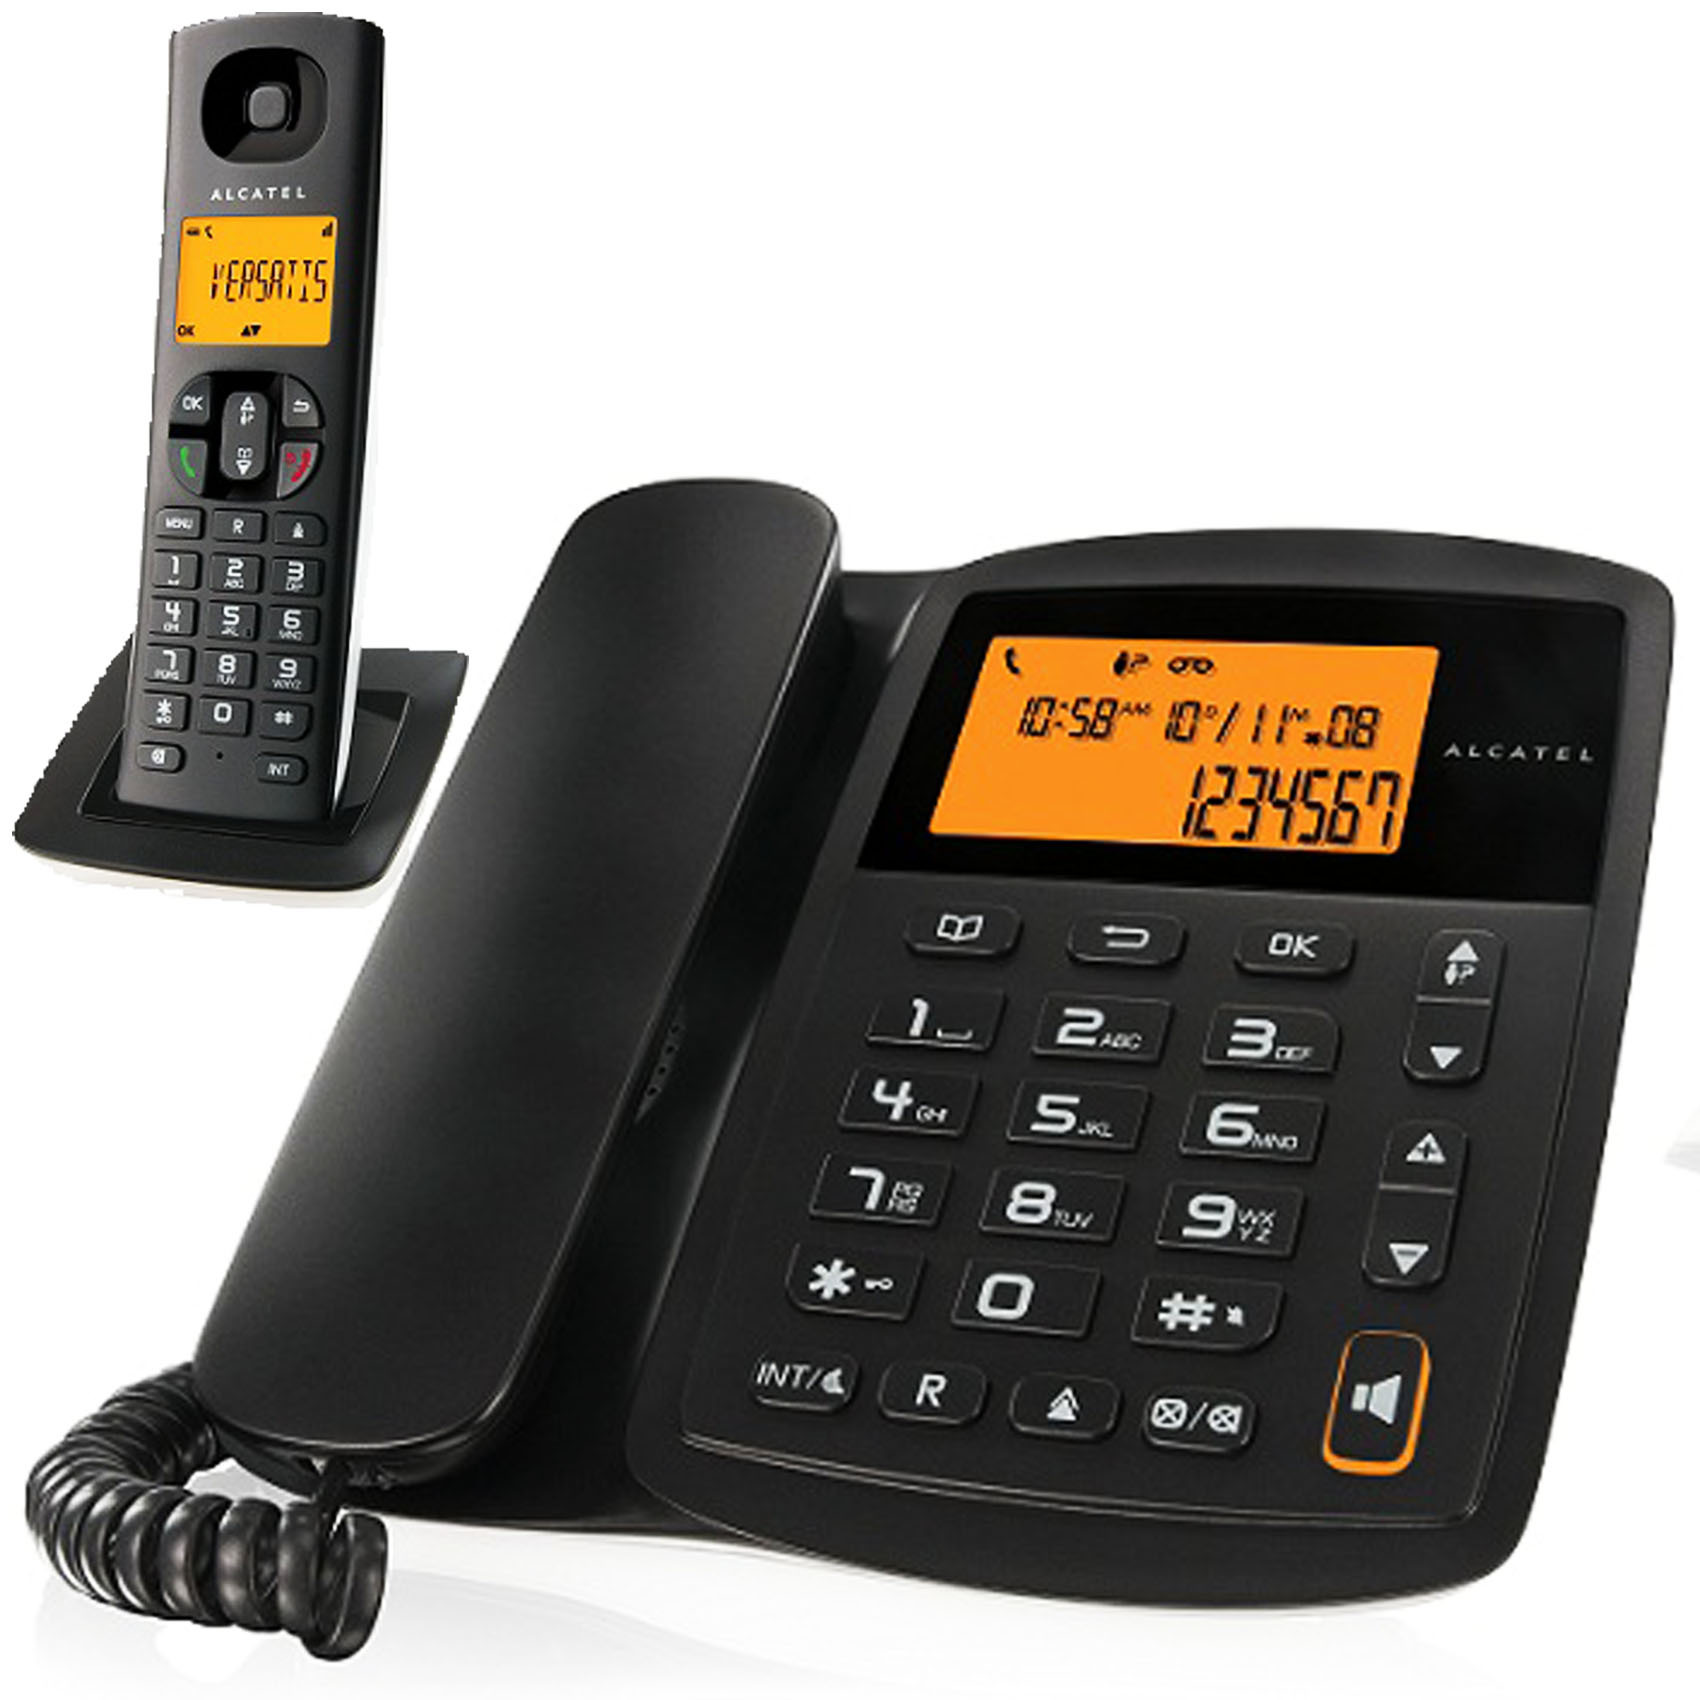 ALCATEL COMBO E100 DECT PHONE